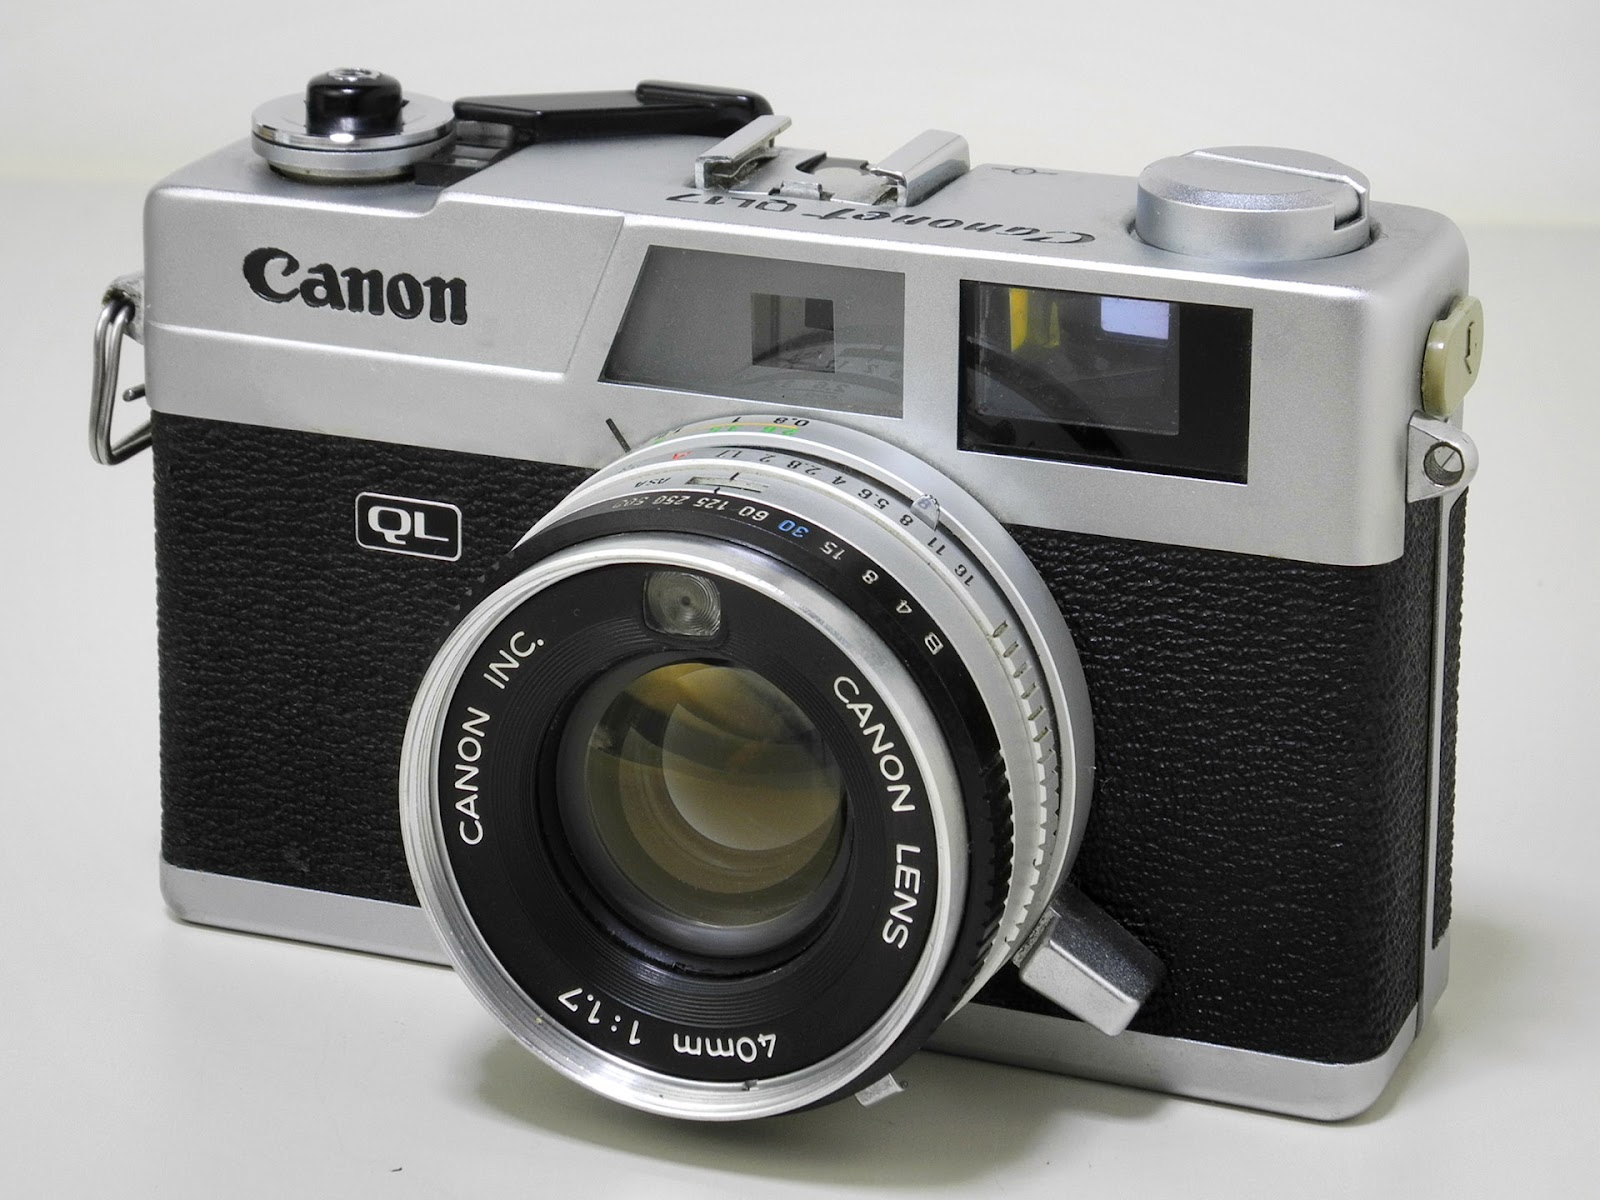 A photo of the Canonet QL17 35mm film camera